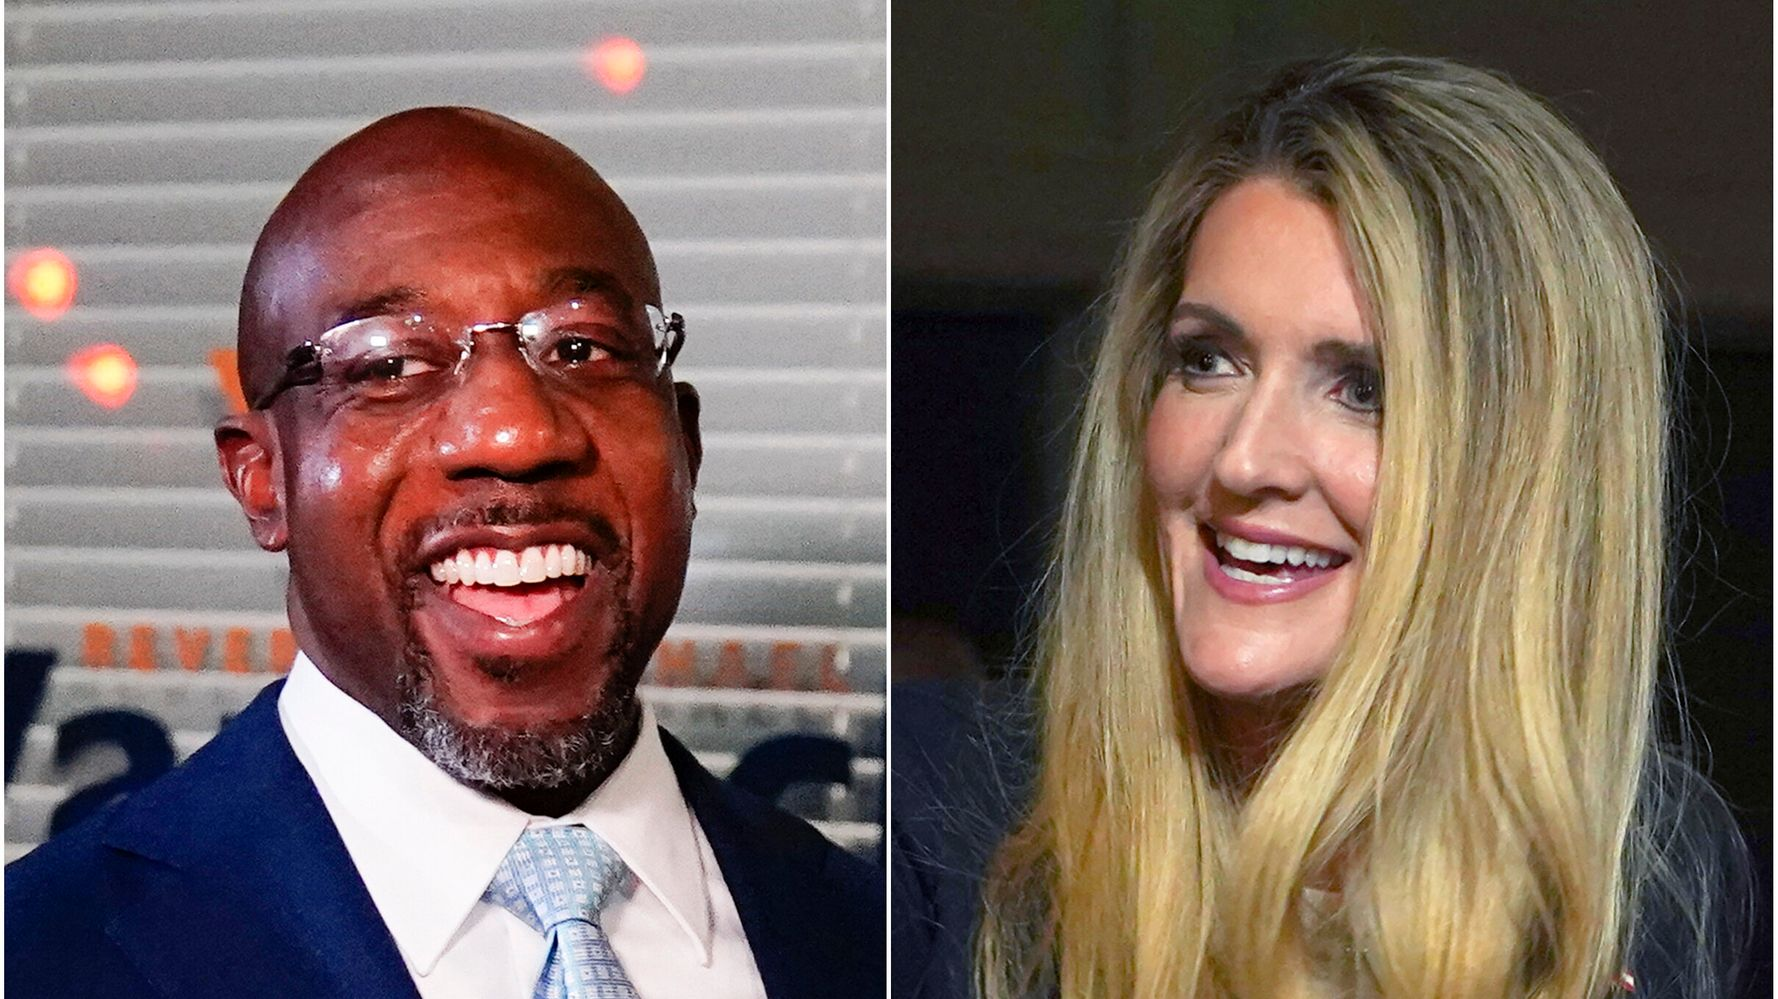 Tonight: Kelly Loeffler And Raphael Warnock To Face Off In Georgia Senate Debate